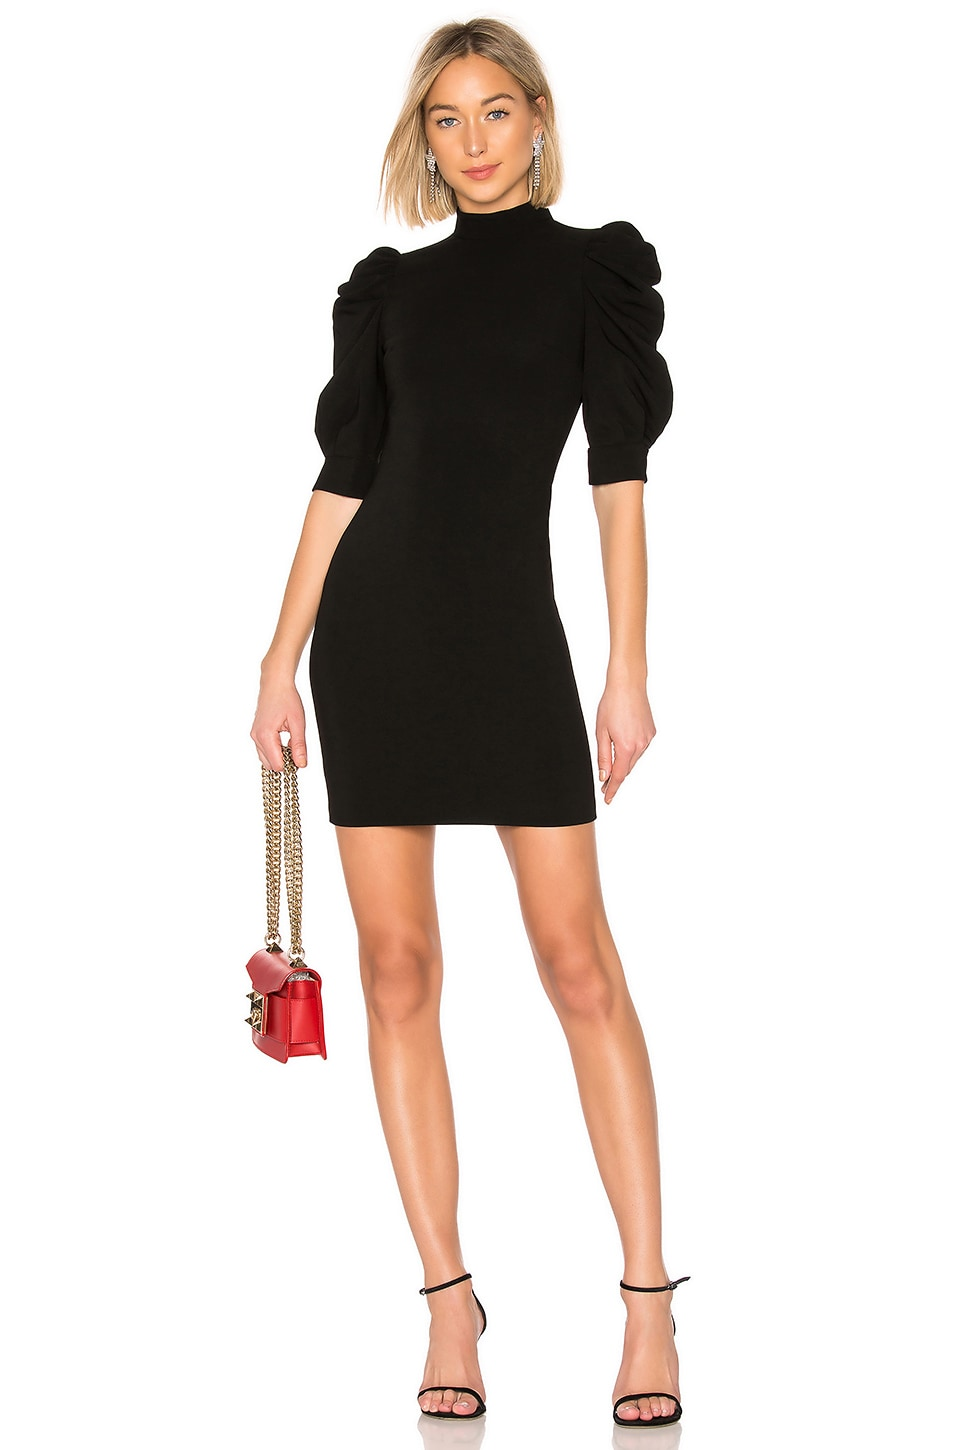 Alice + Olivia Brenna Dress in Black